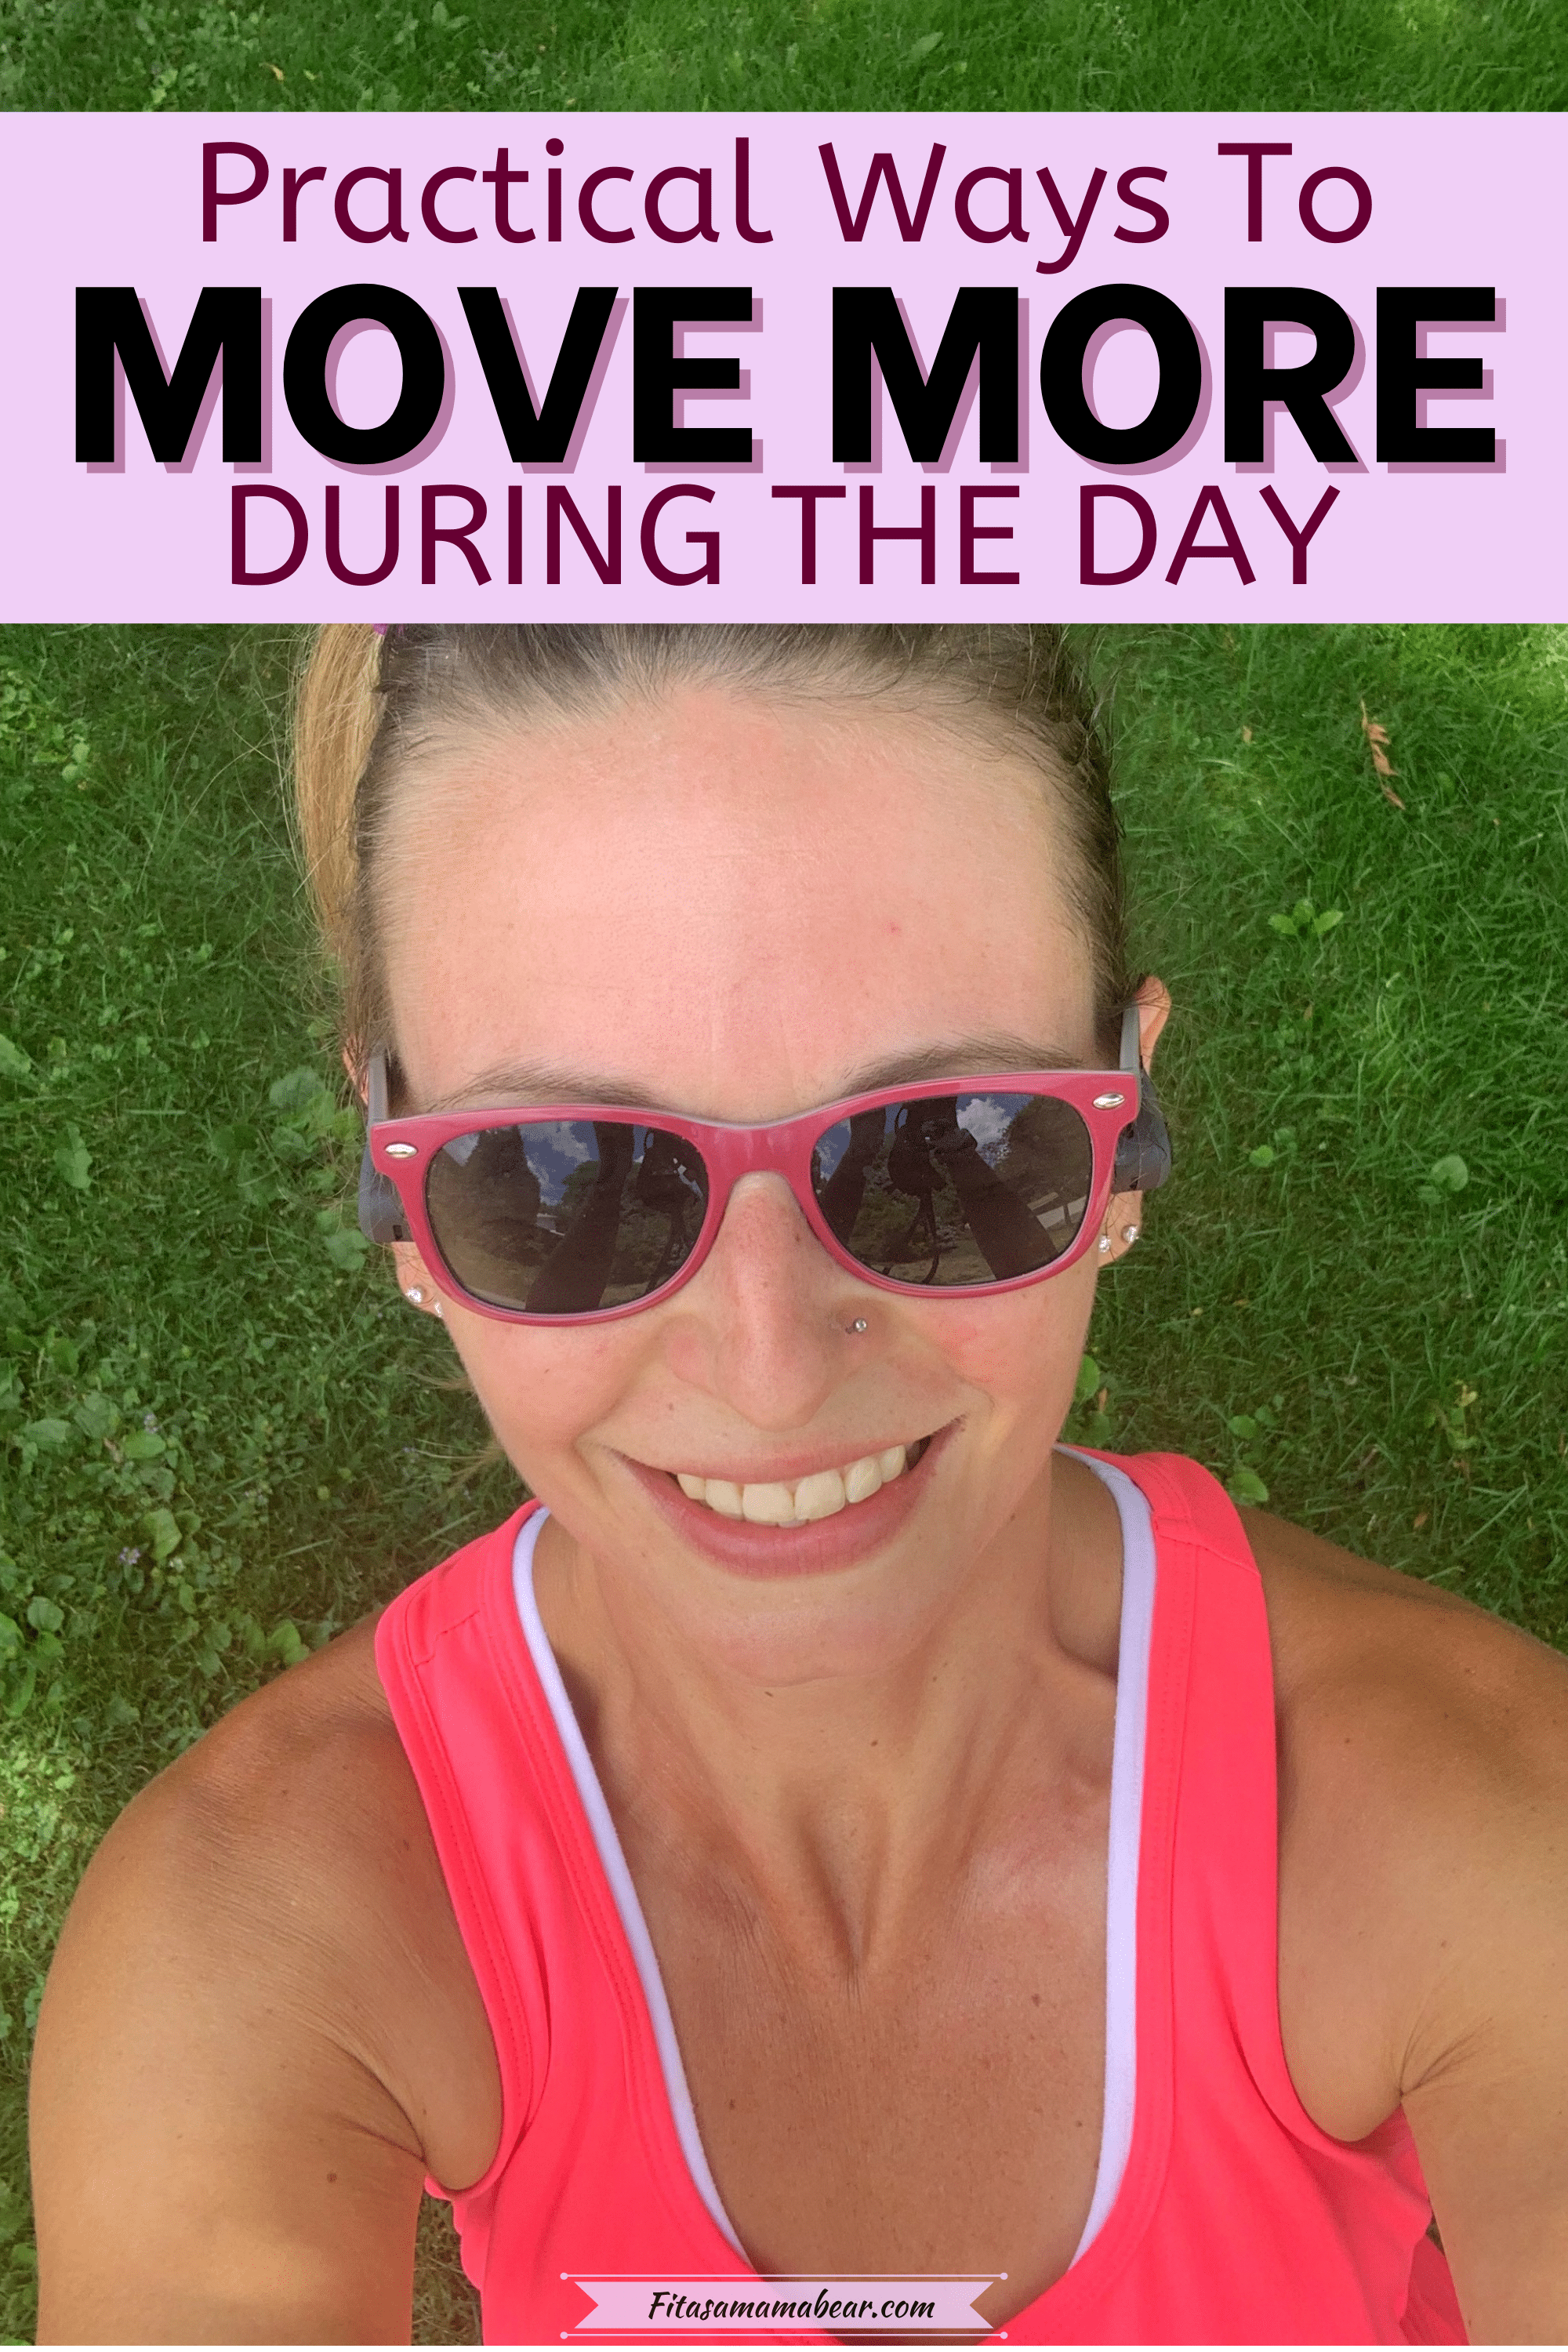 Pinterest image with text: woman in pink tank top and sunglasses smiling at camera